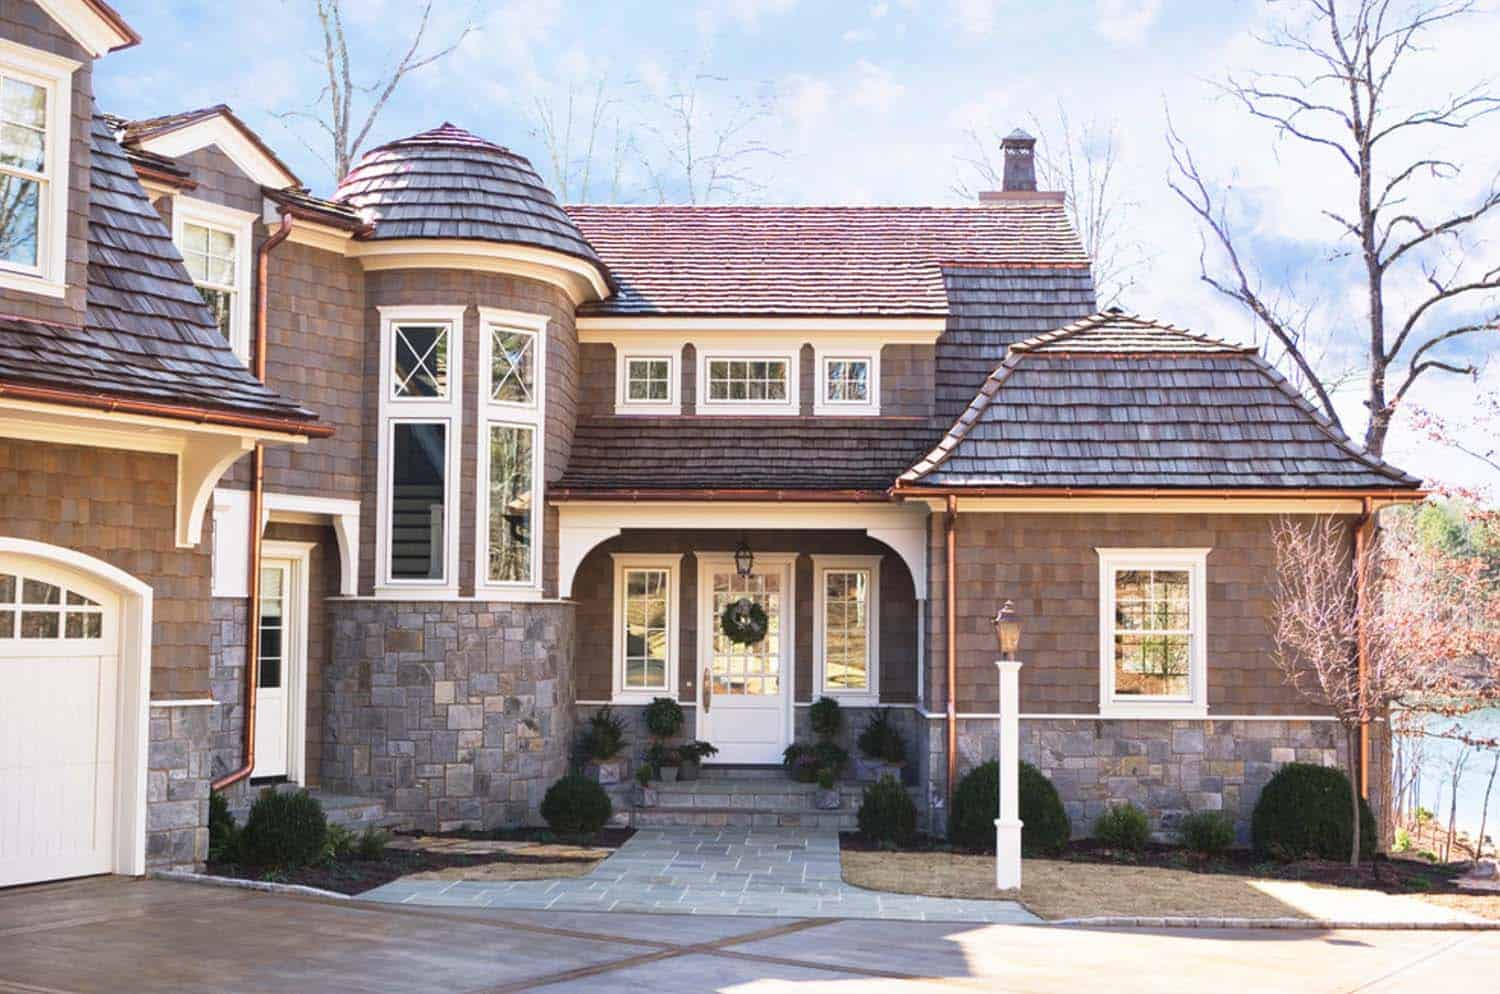 Shingle Style Cottage-Linda McDougald Design-03-1 Kindesign